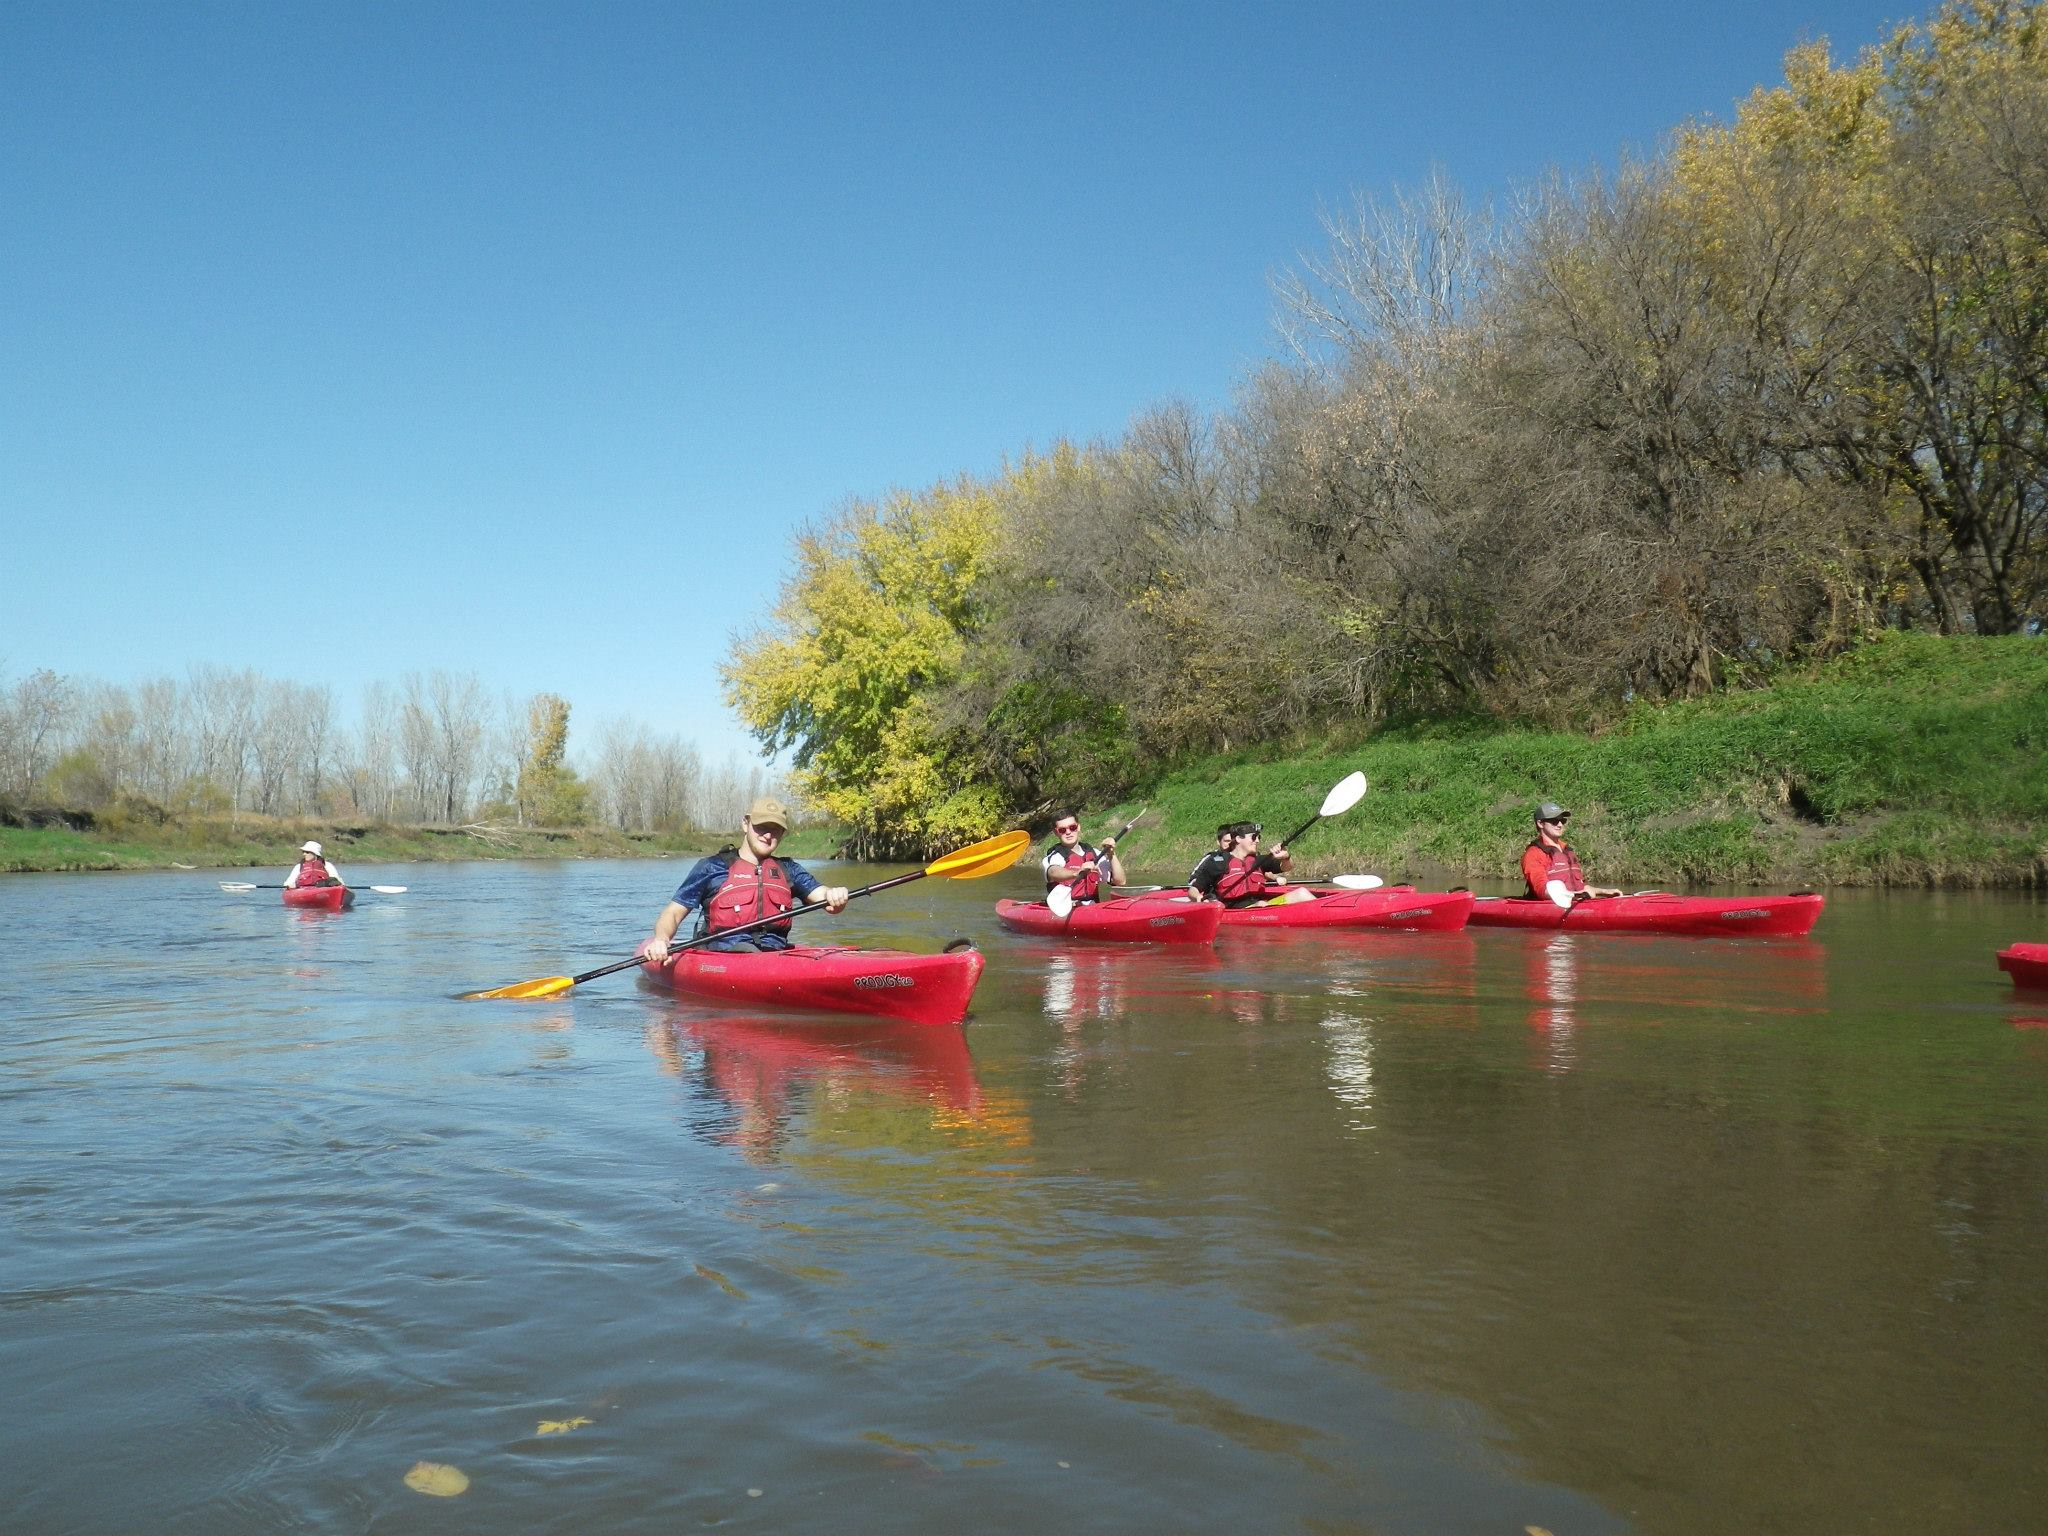 UNL students kayaking the Nishnabotna River in Iowa. Proceeds from the gear sale is used to purchase new & updated gear to beneift UNL students.